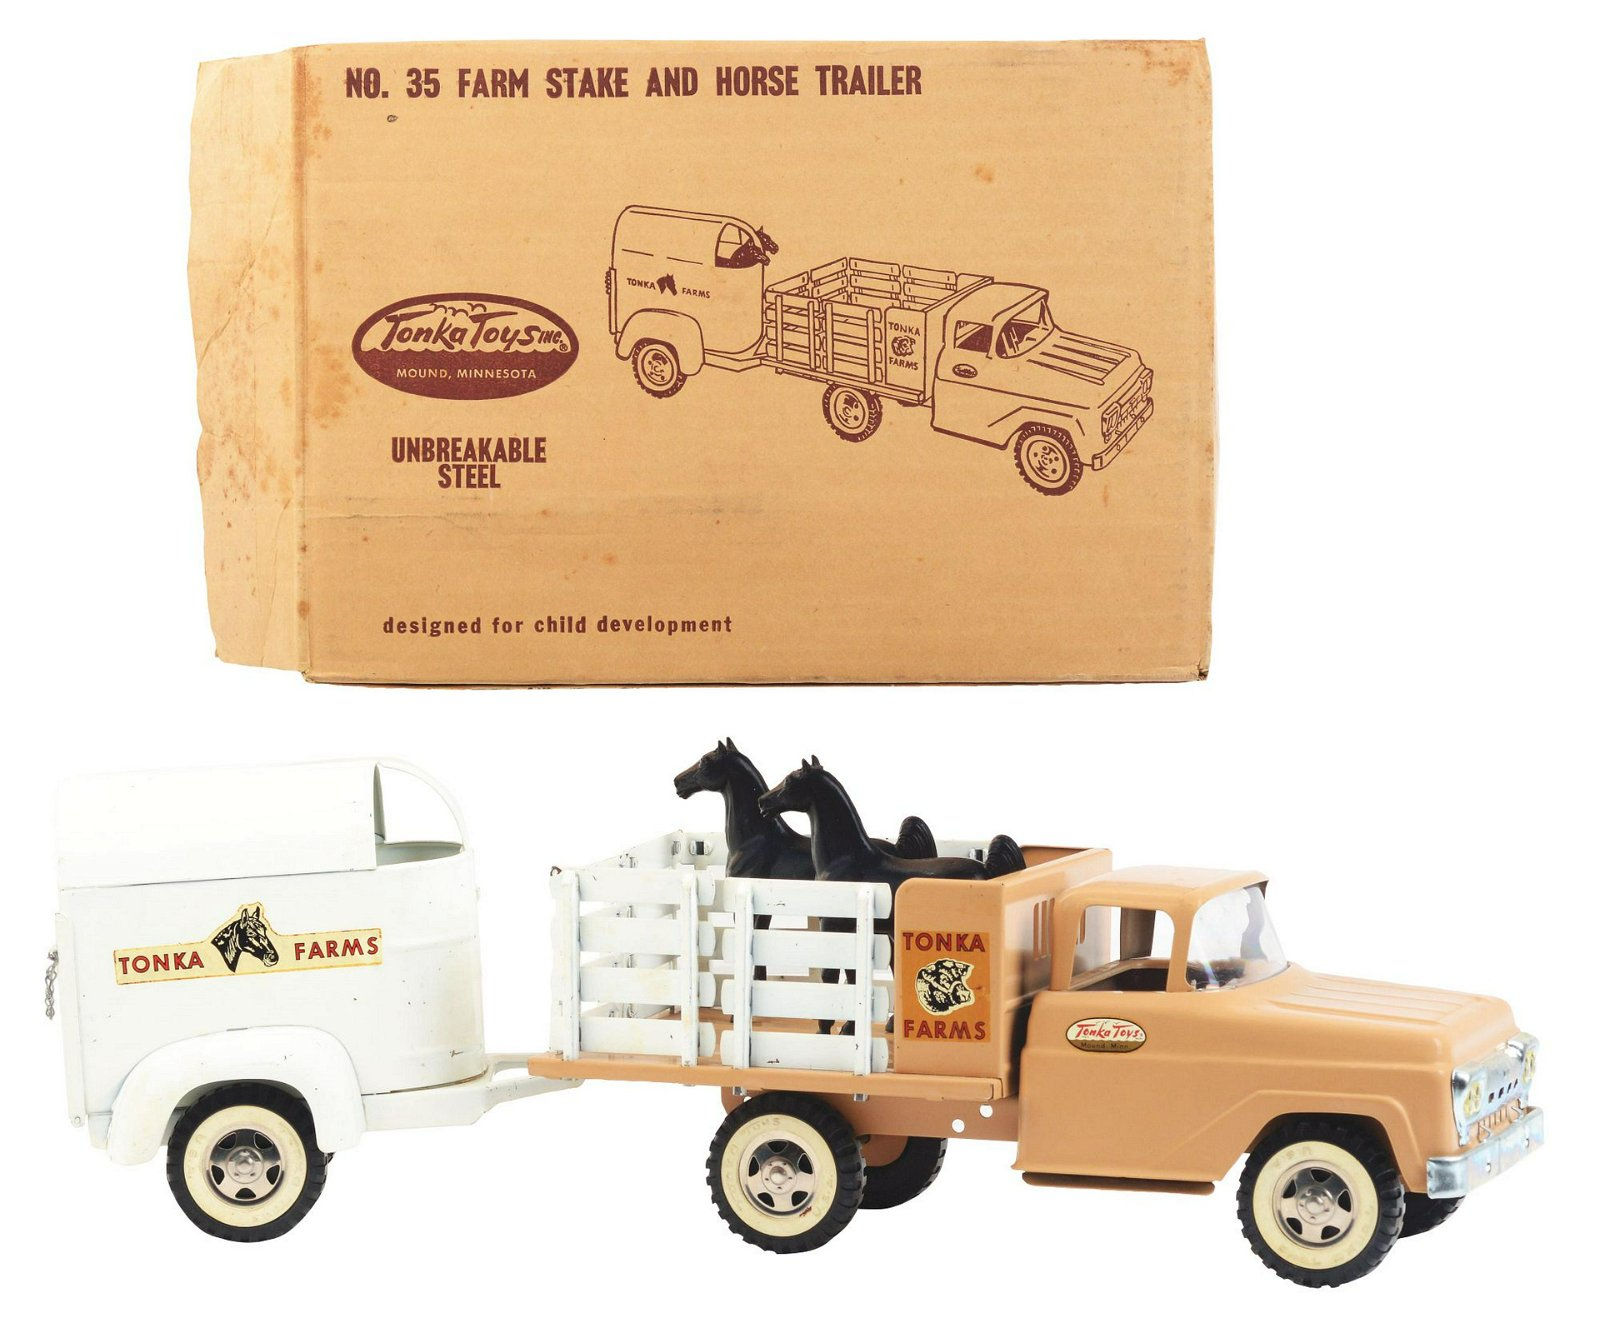 Pressed Steel 1959 Tonka Farms Stake and Horse Trailer